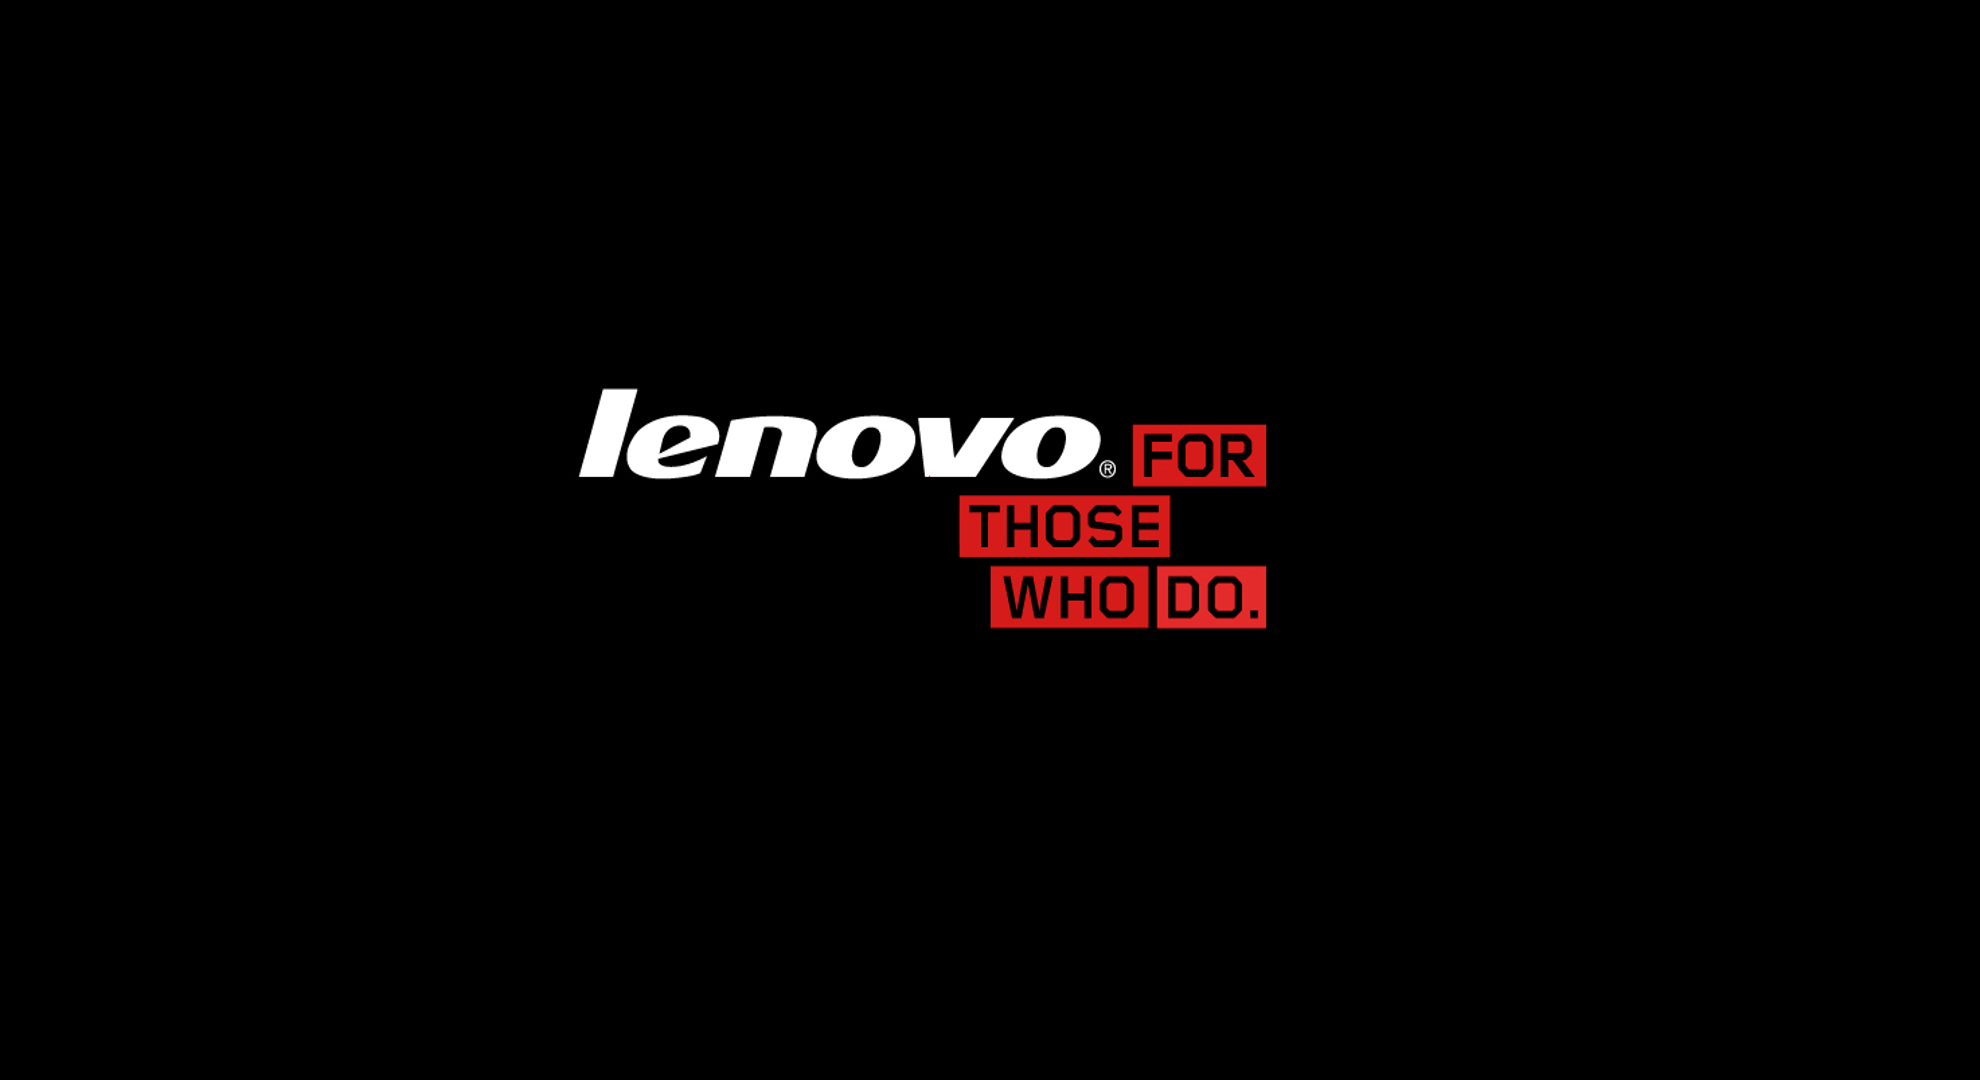 Lenovo Wallpapers and Background Images   stmednet 1980x1080